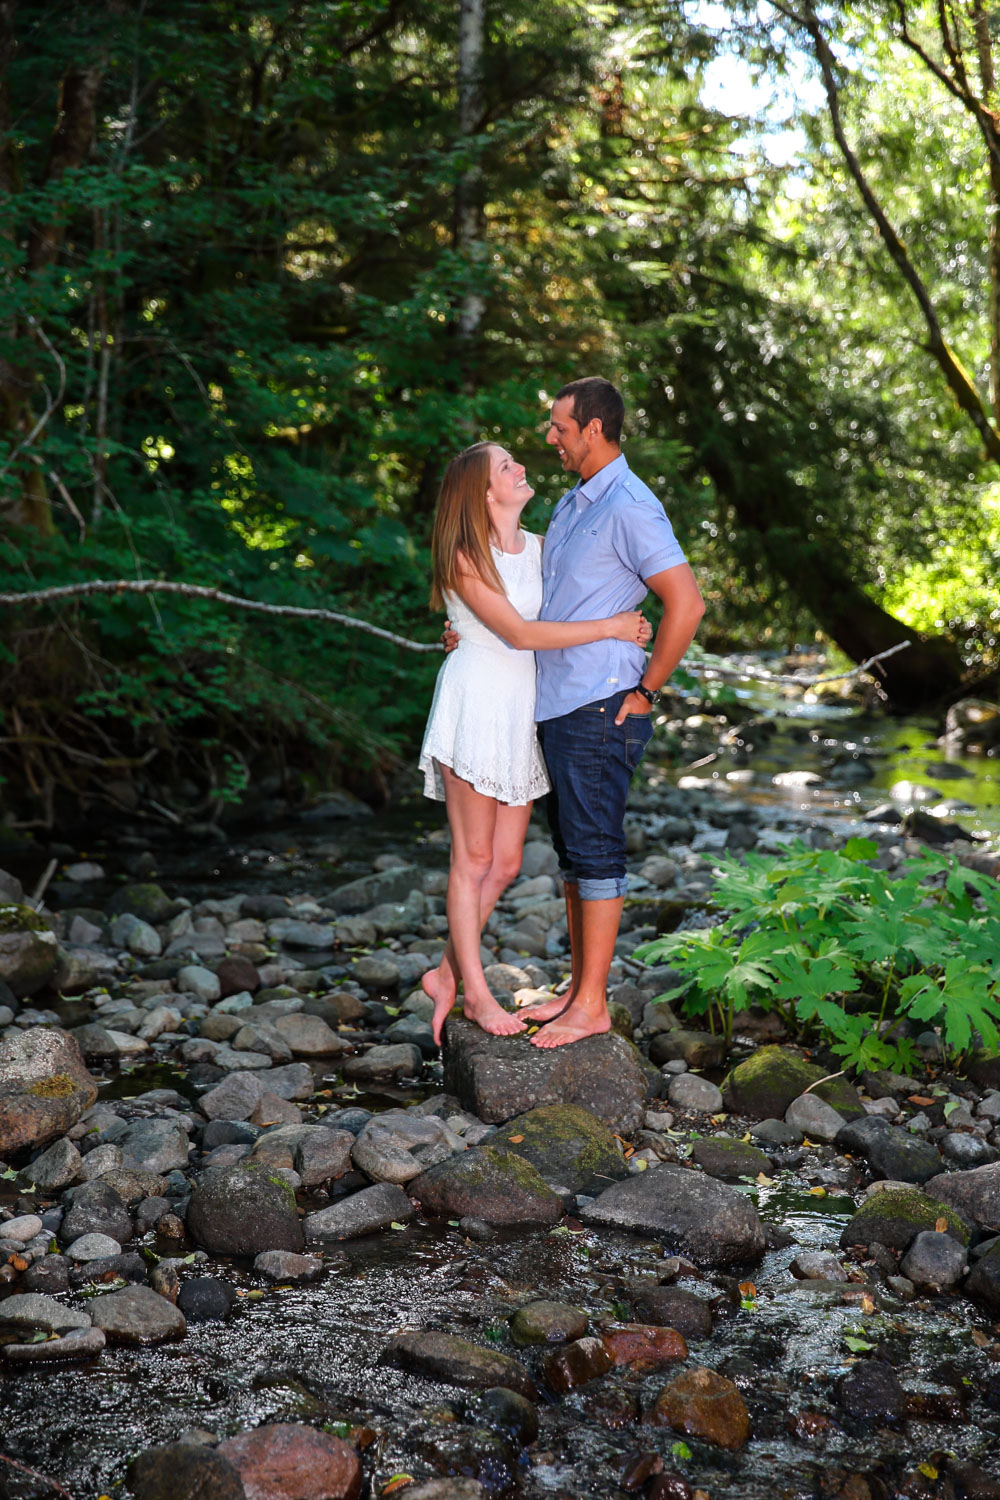 Engagement Photos Wellspring Spa My Rainer Washington06.jpg